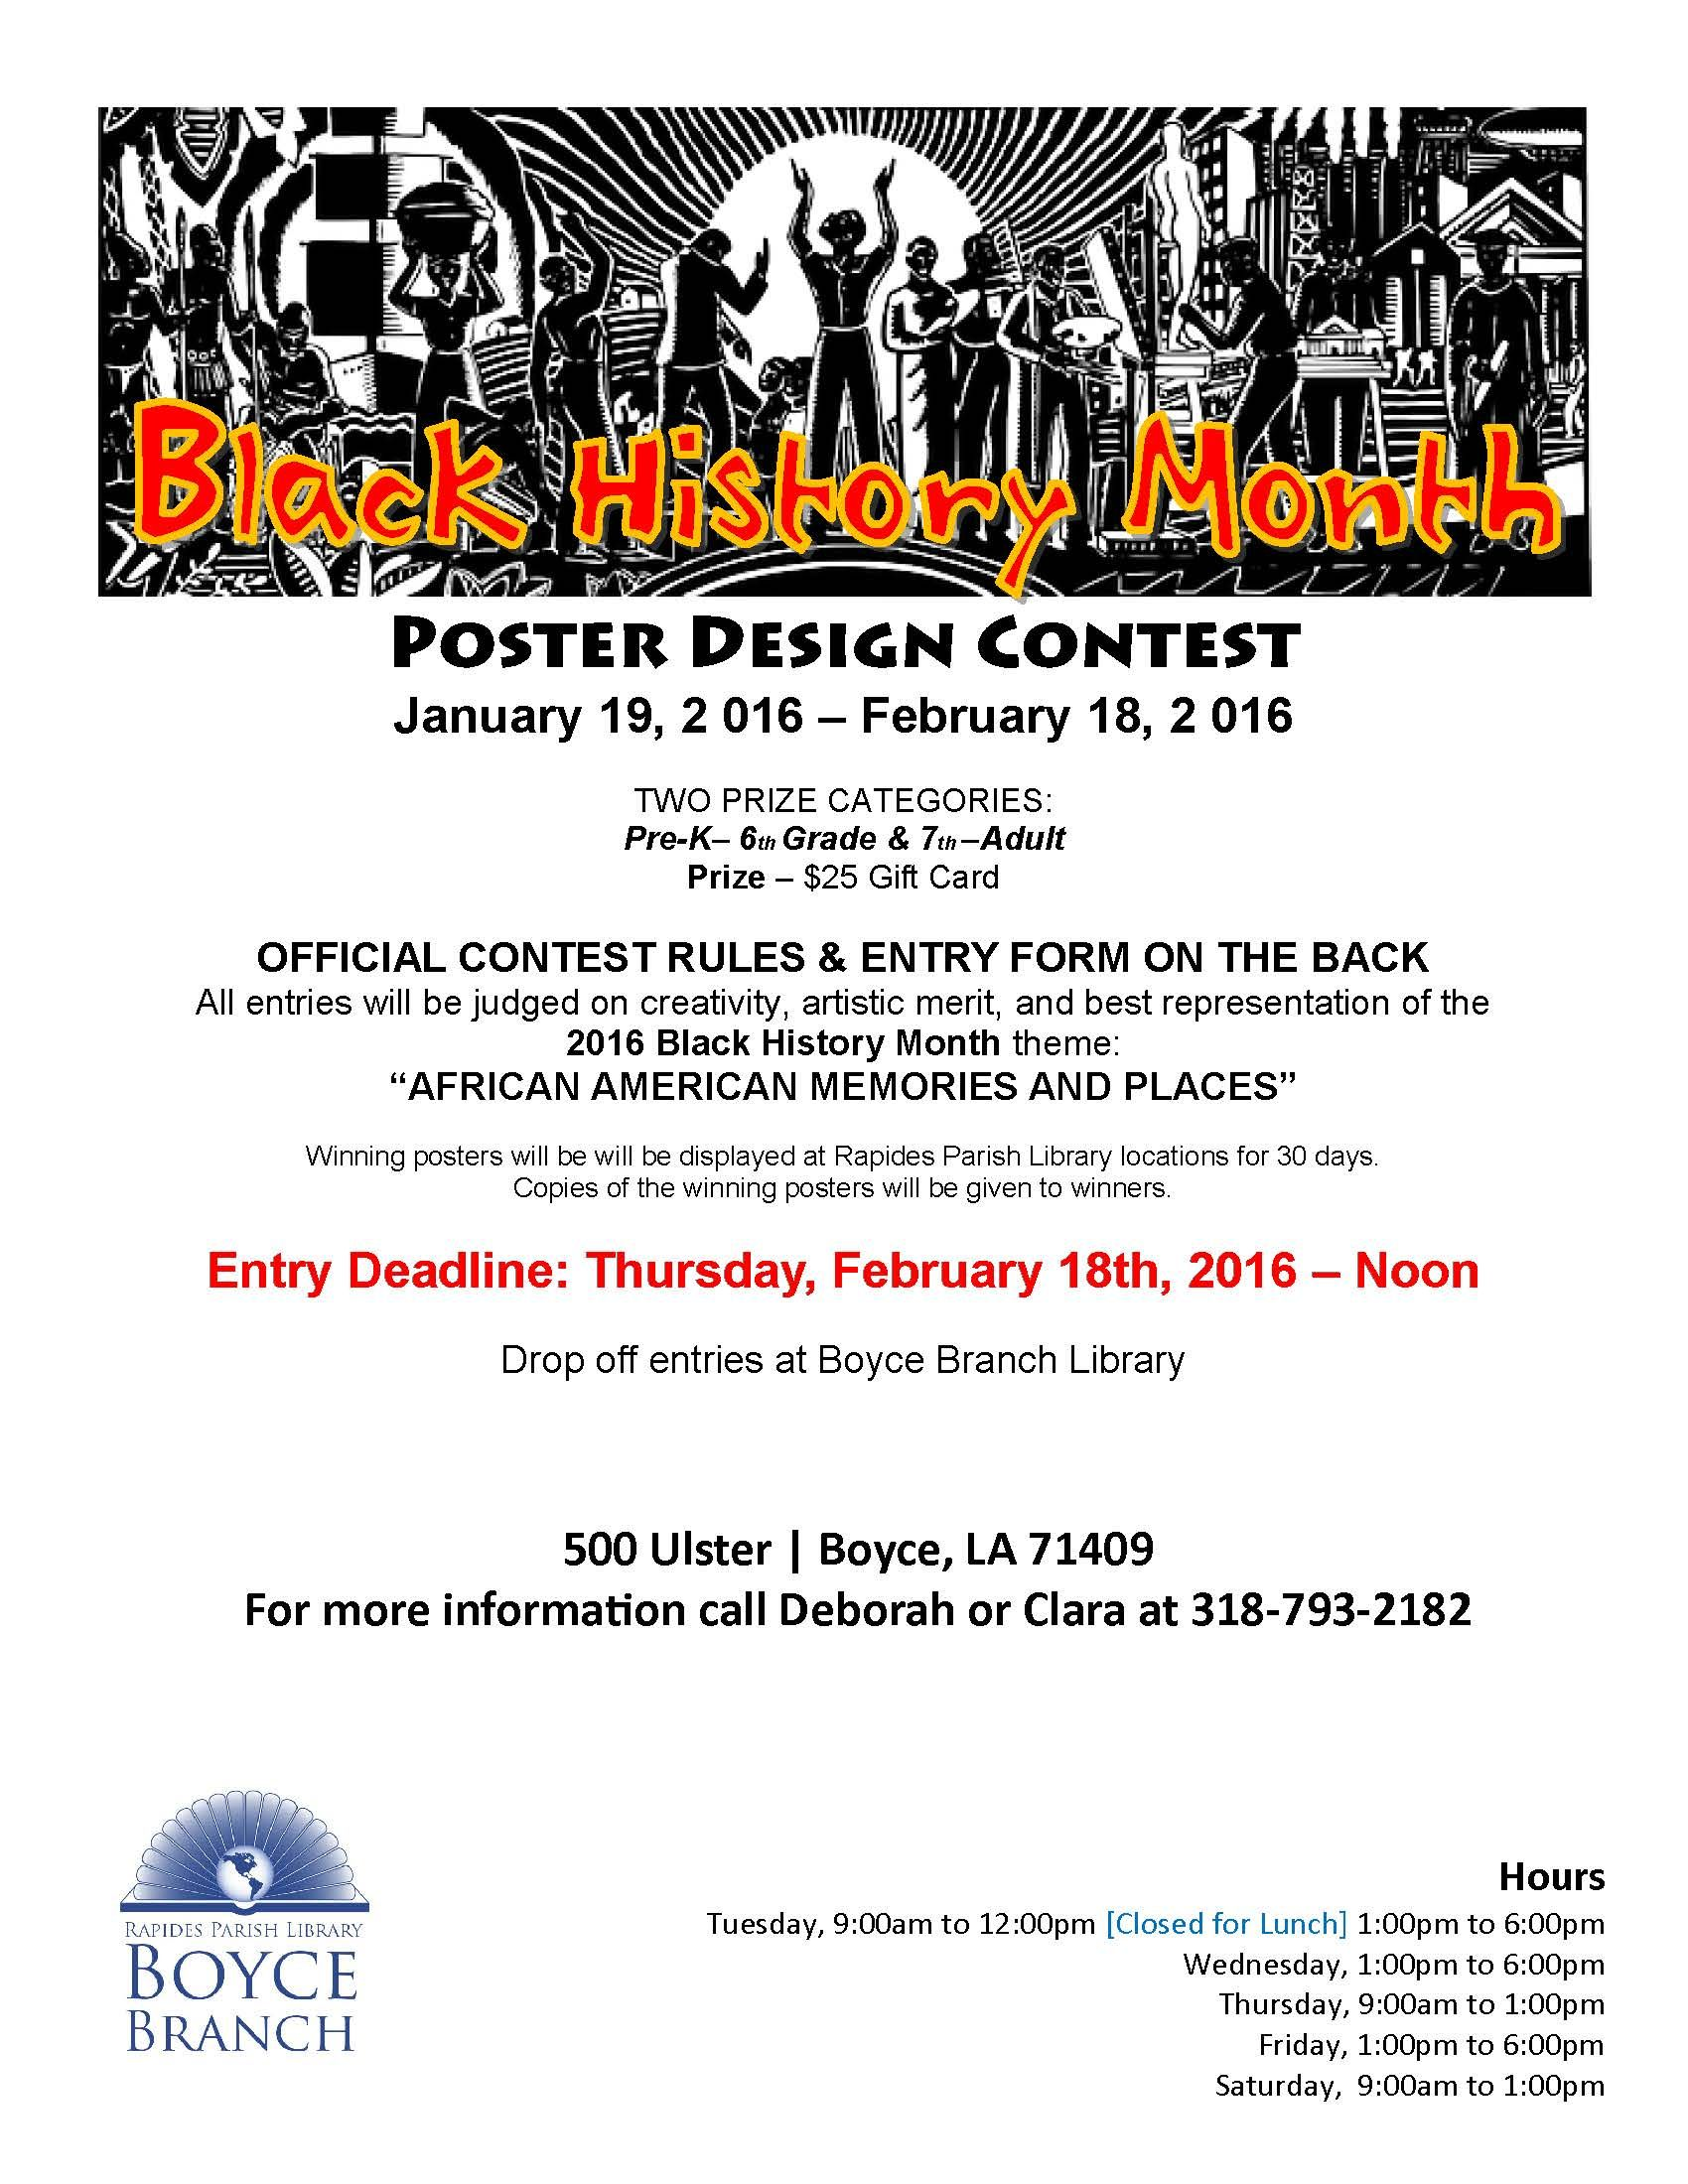 Poster design contest 2016 - Boyce Branch Black History Month Poster Design Contest Pick Up The Rules And Entry